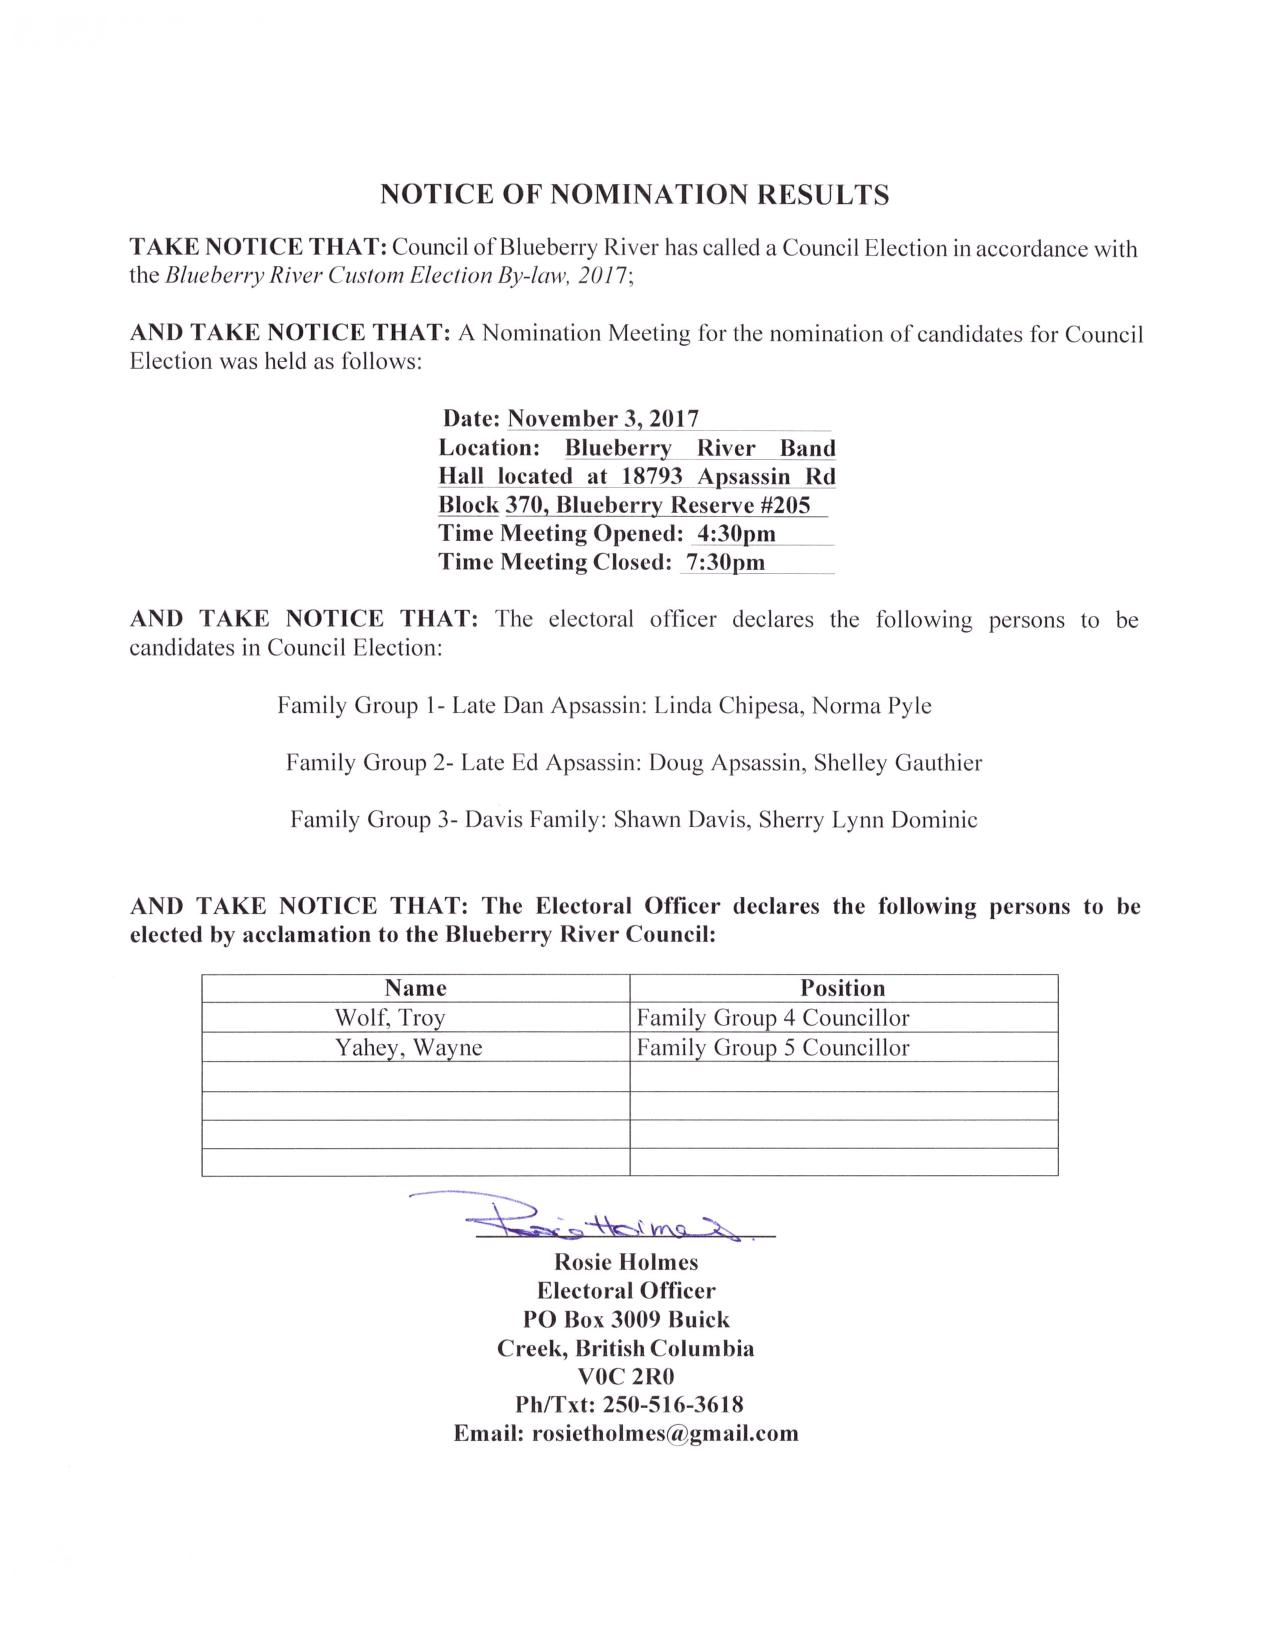 BRFN NOTICE OF NOMINATION RESULTS-page-001